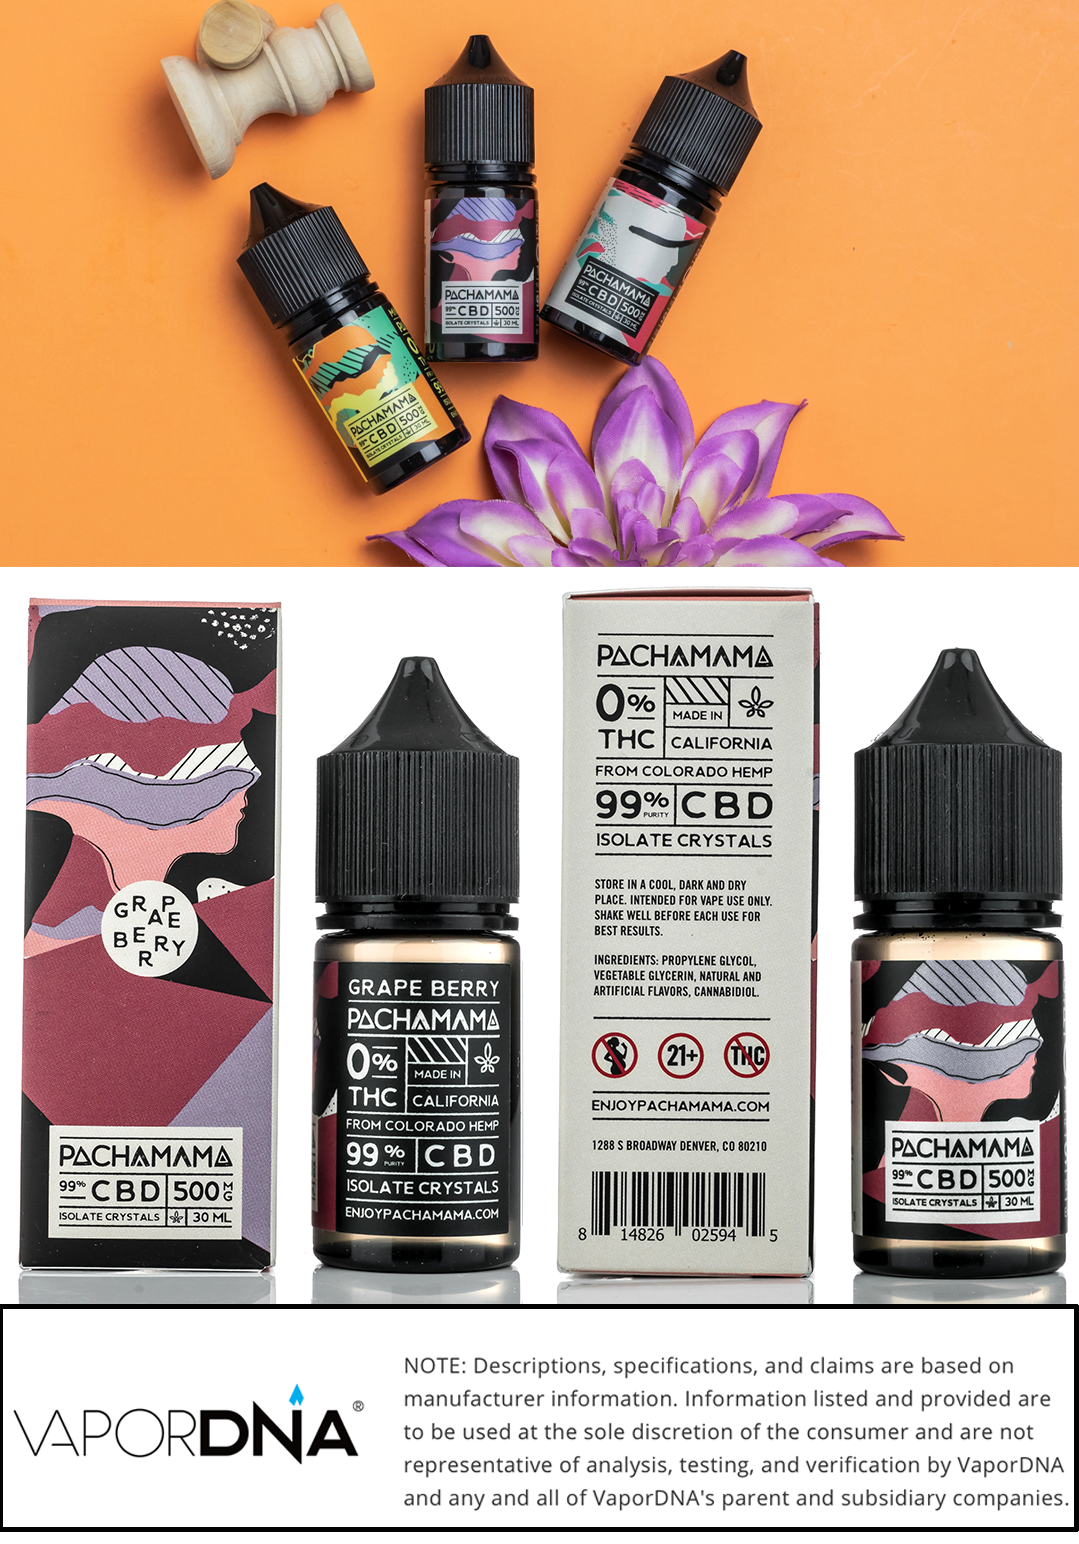 pachamama cbd vape juice infographic-grape berry